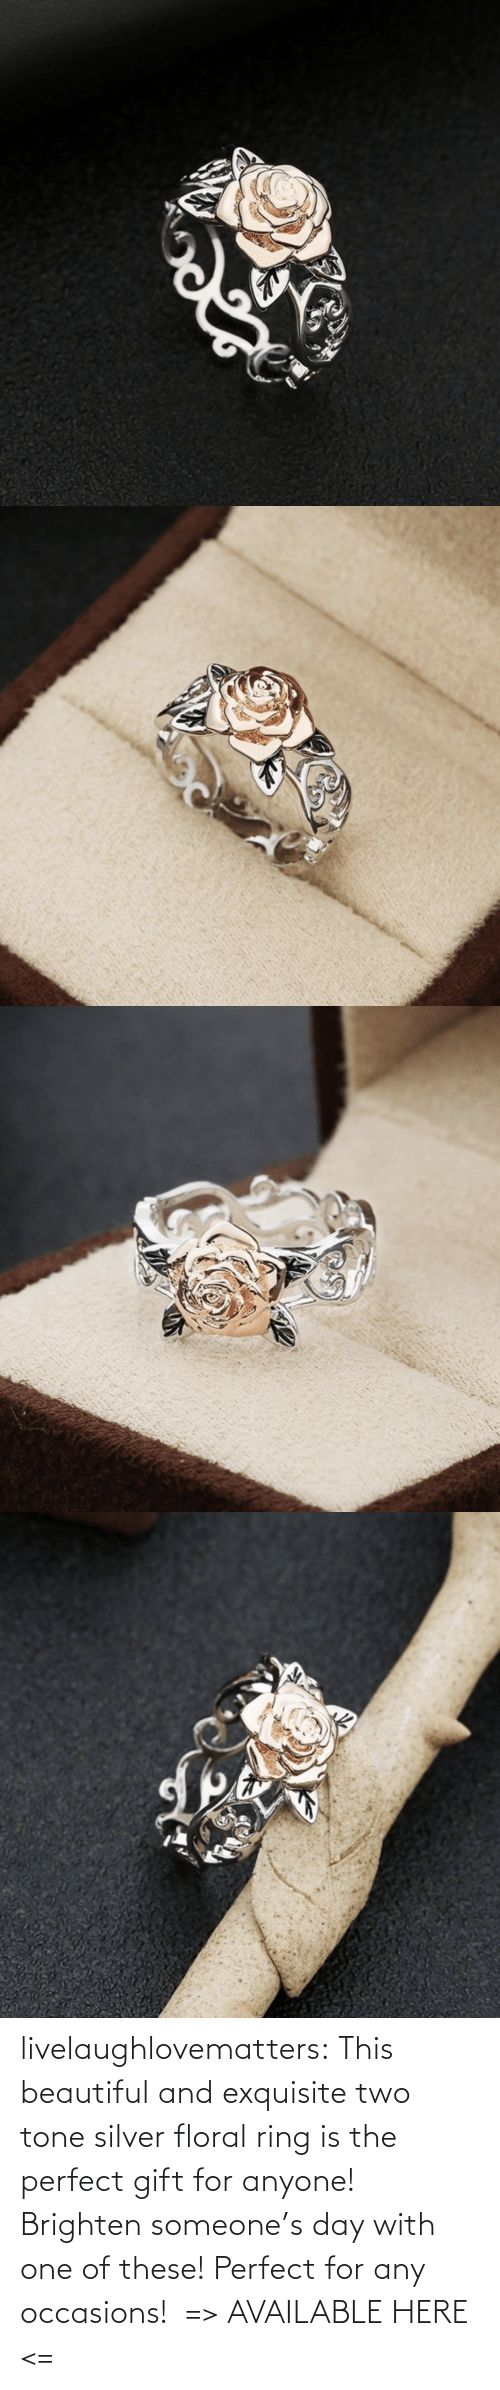 beautiful: livelaughlovematters: This beautiful and exquisite two tone silver floral ring is the perfect gift for anyone! Brighten someone's day with one of these! Perfect for any occasions!  => AVAILABLE HERE <=